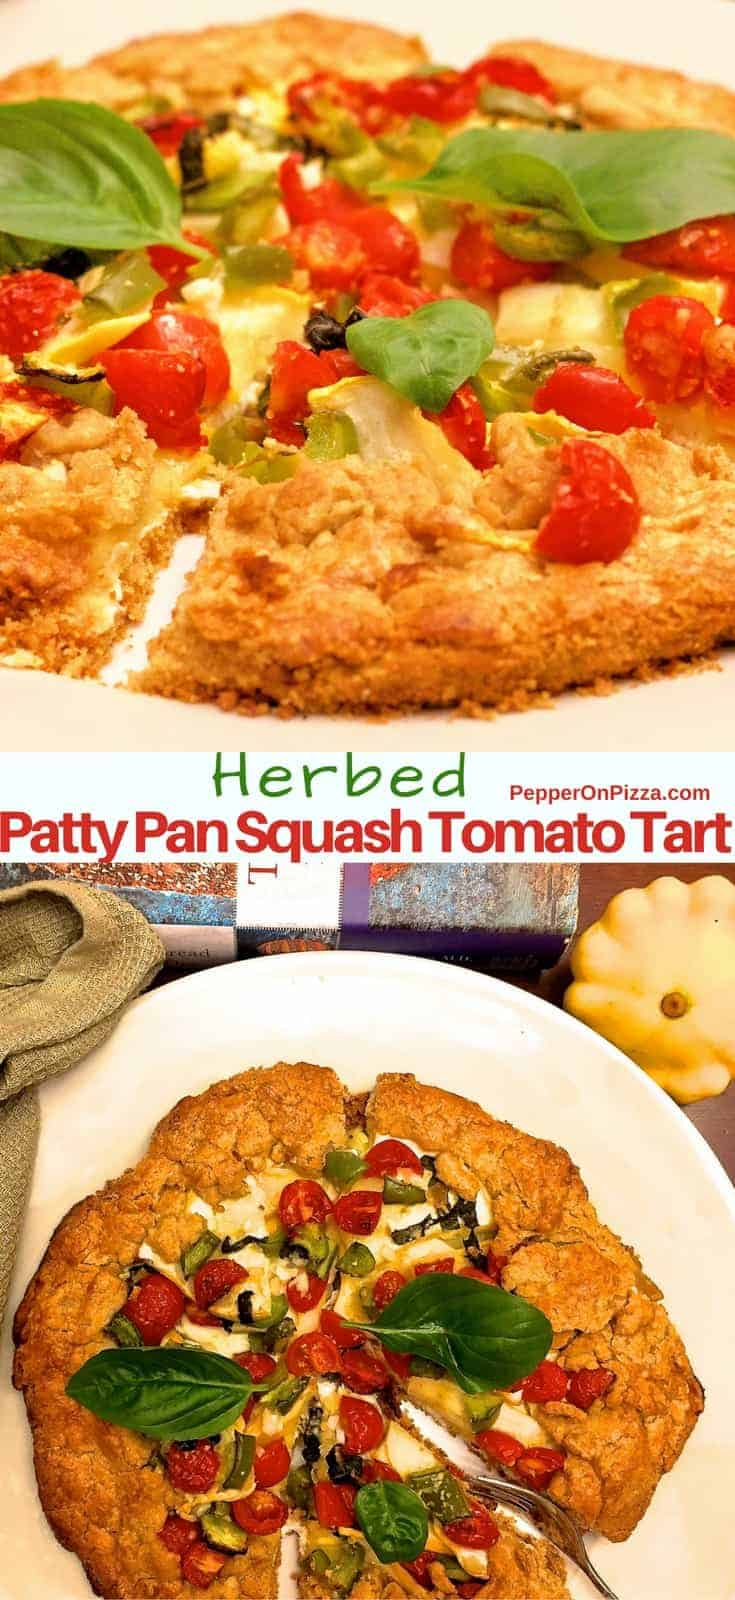 Simple savoury herbed Patty Pan Squash Tomato Tart with a healthy whole wheat and oats crust. Easy even if you are making tart crust for the first time.